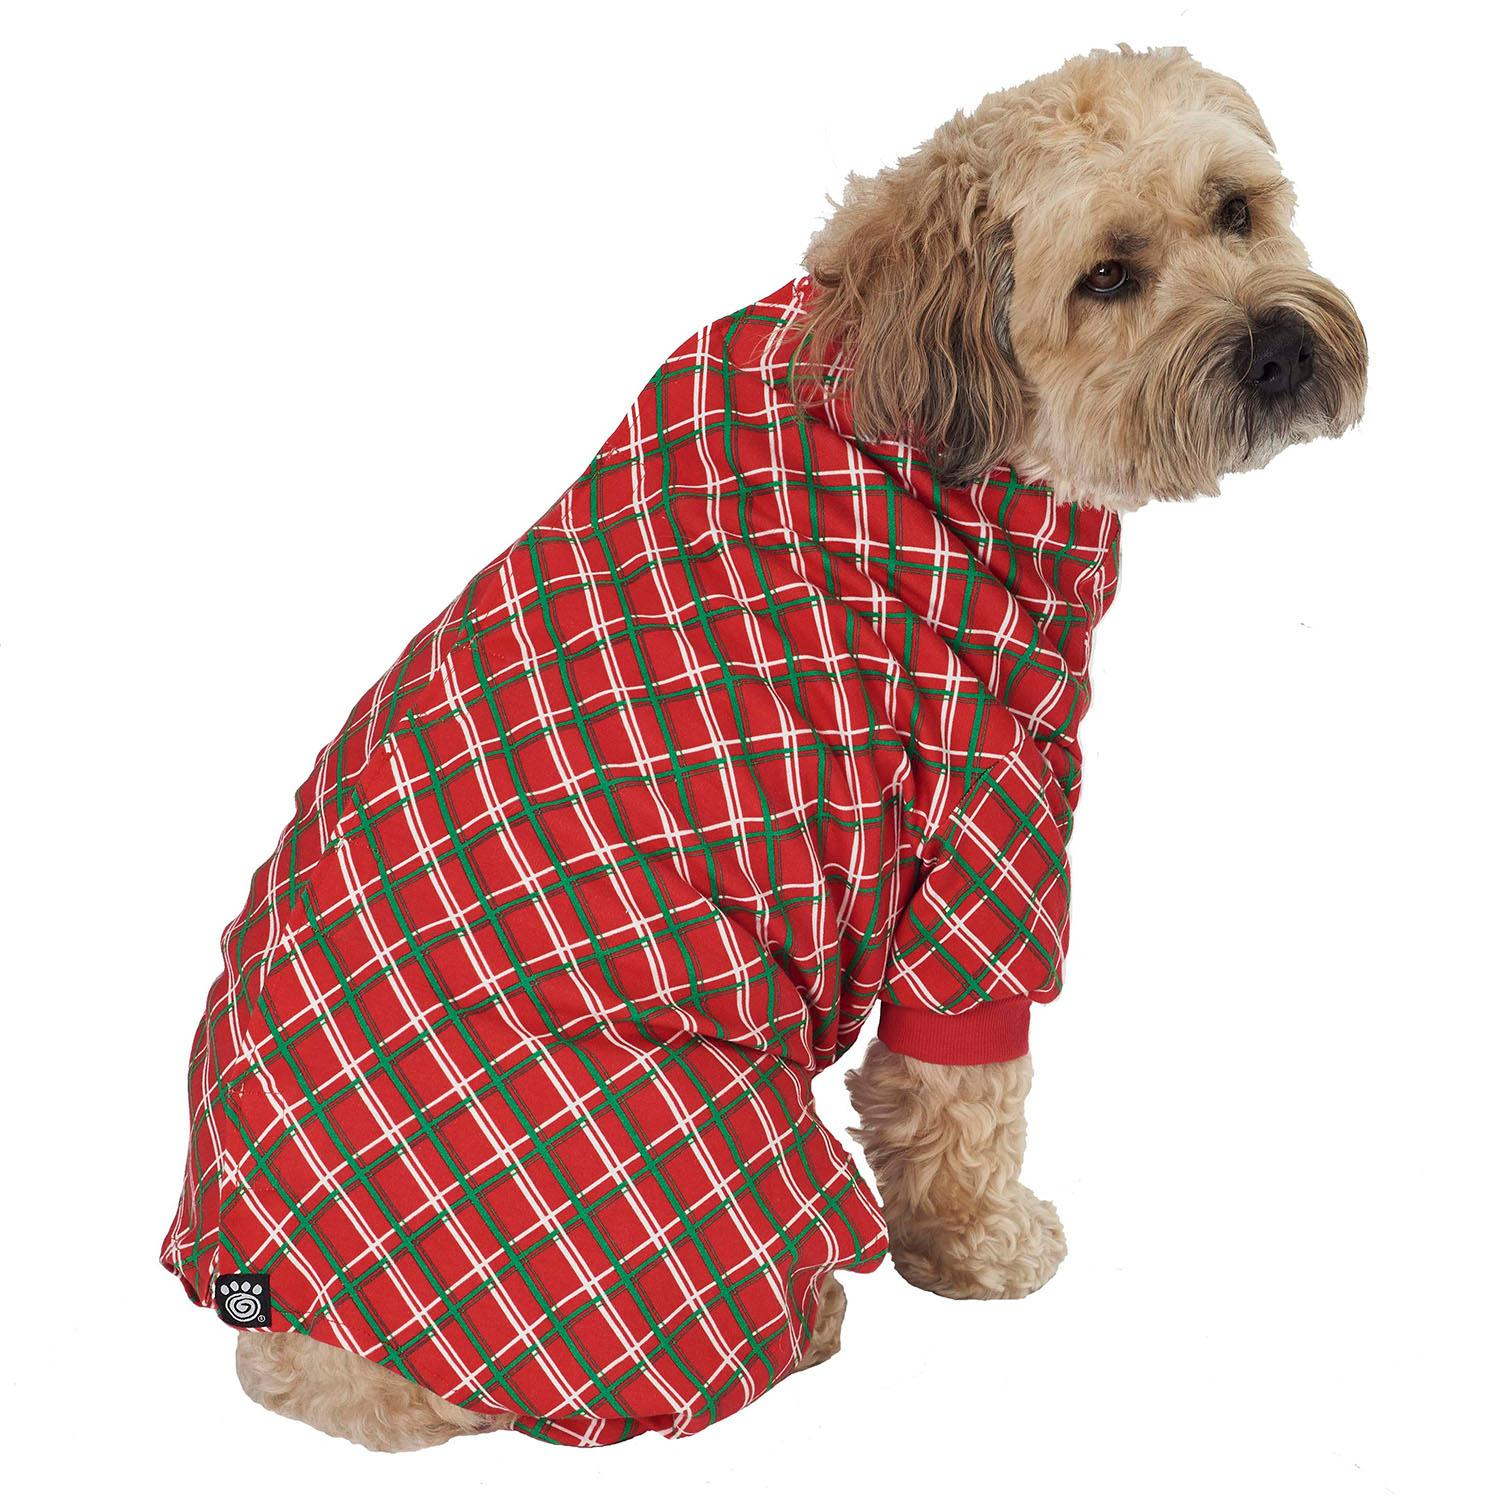 Christmas Pajamas For Dog.Christmas Plaid Dog Pajamas Red